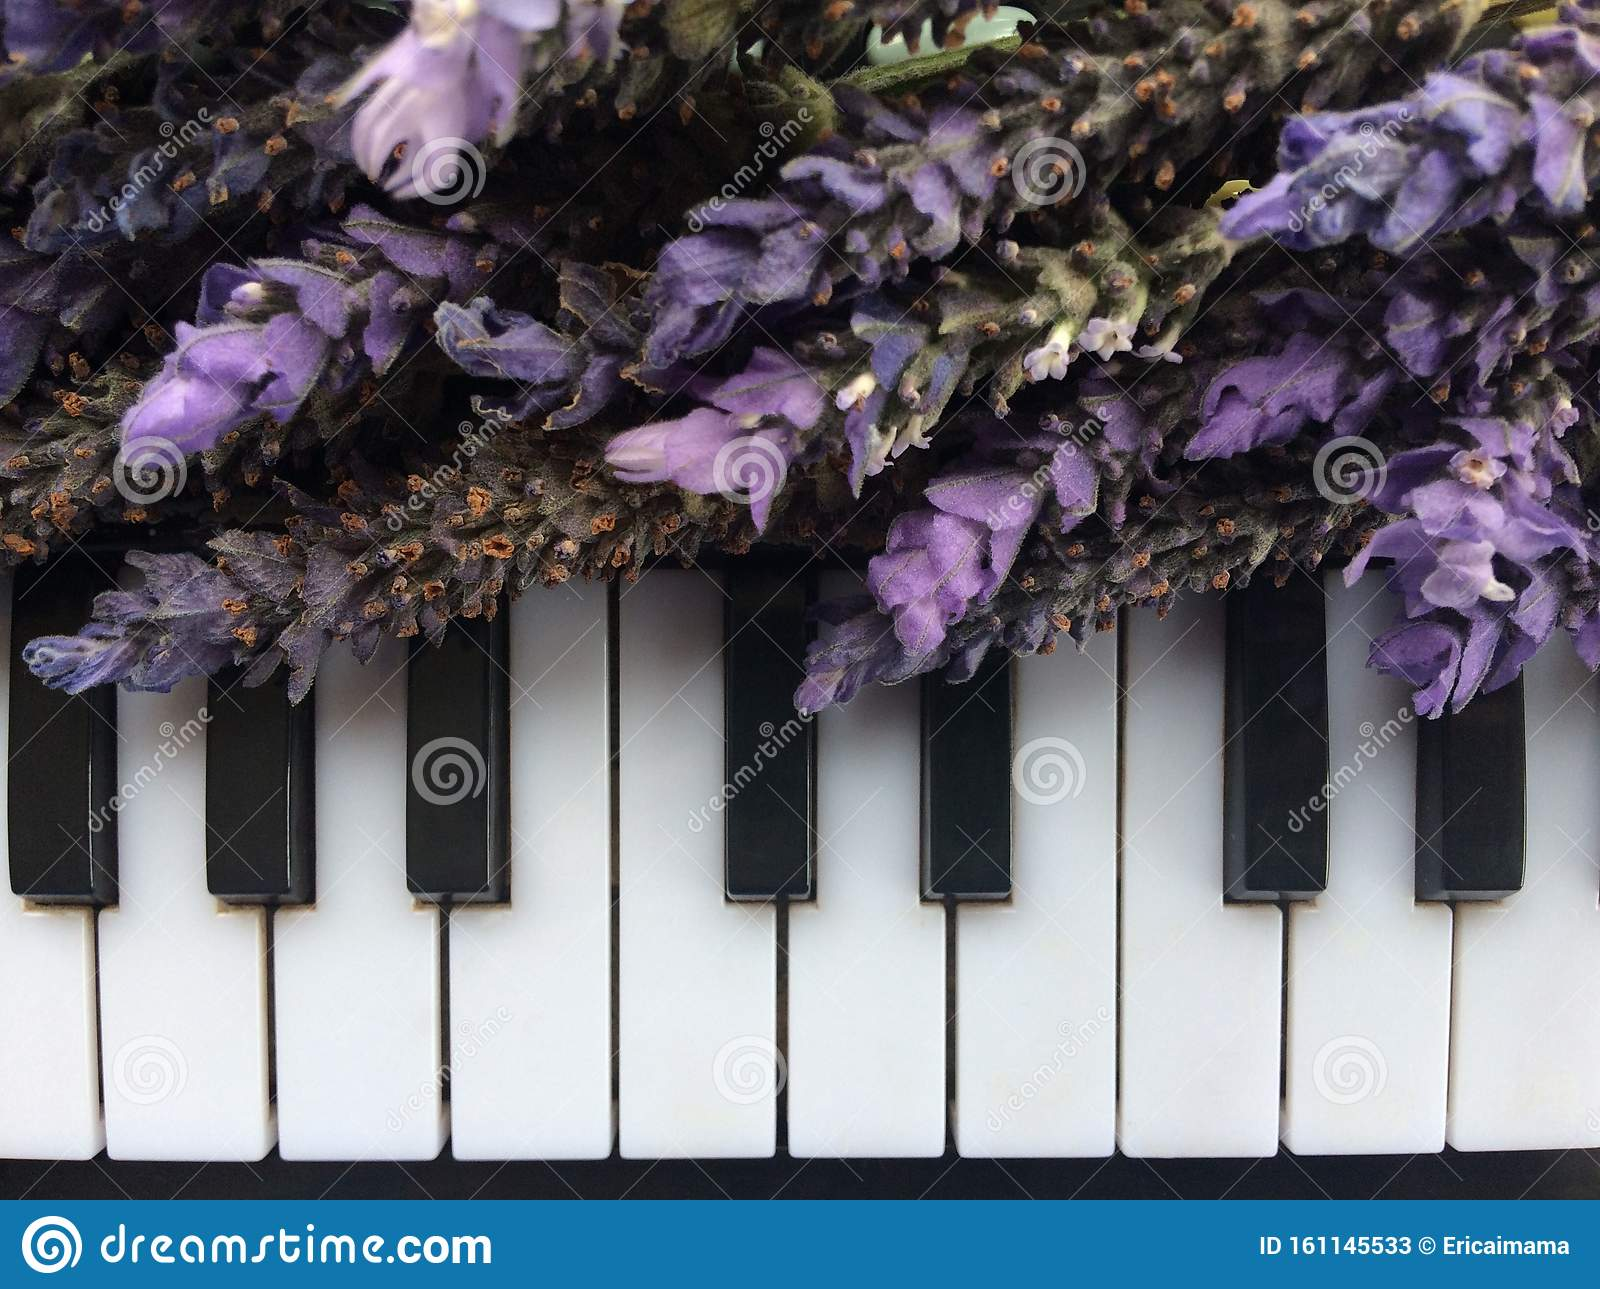 28 157 Piano Keyboard Photos Free Royalty Free Stock Photos From Dreamstime